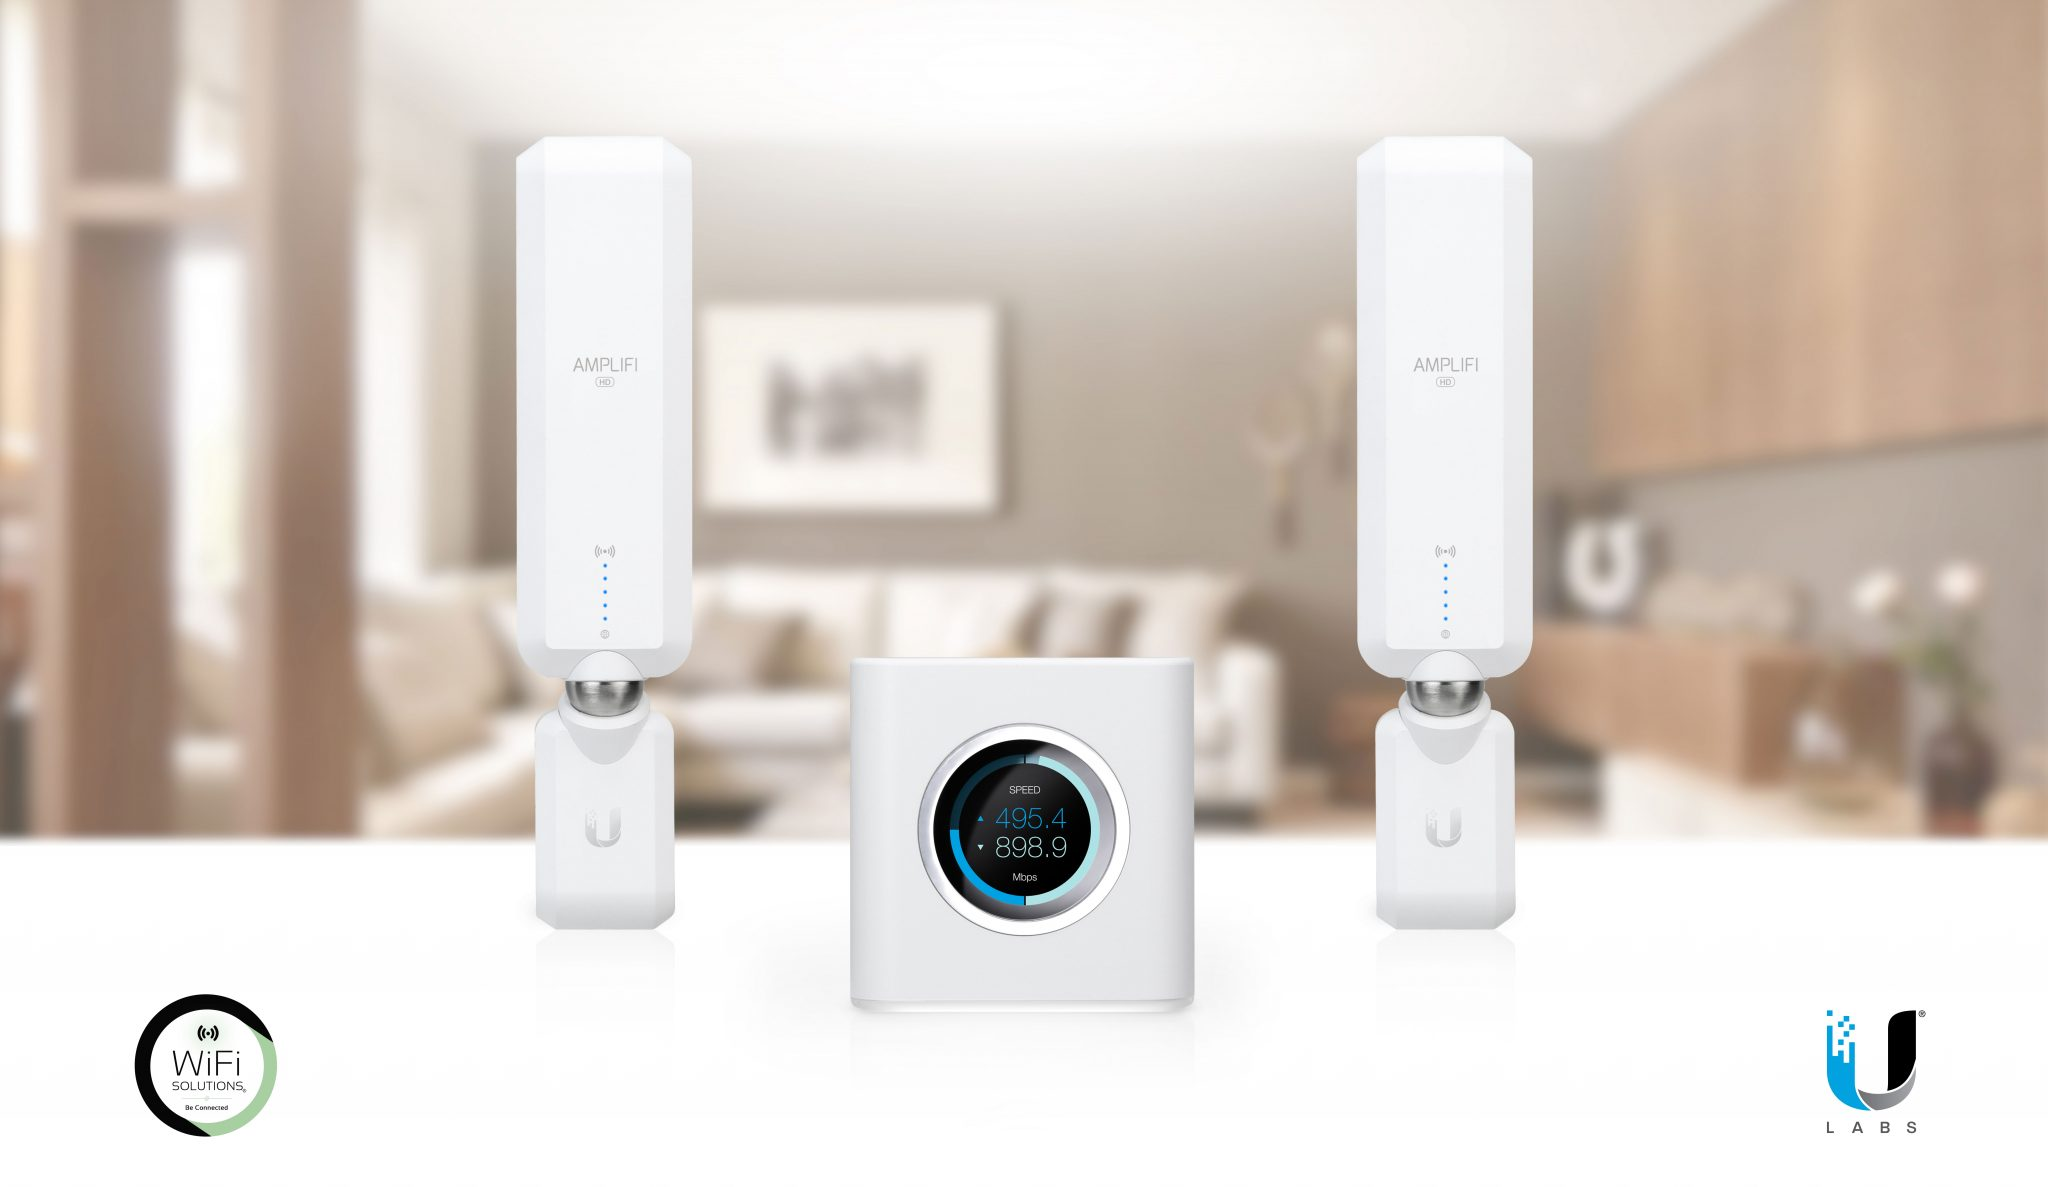 WiFi Solutions - AmpliFi